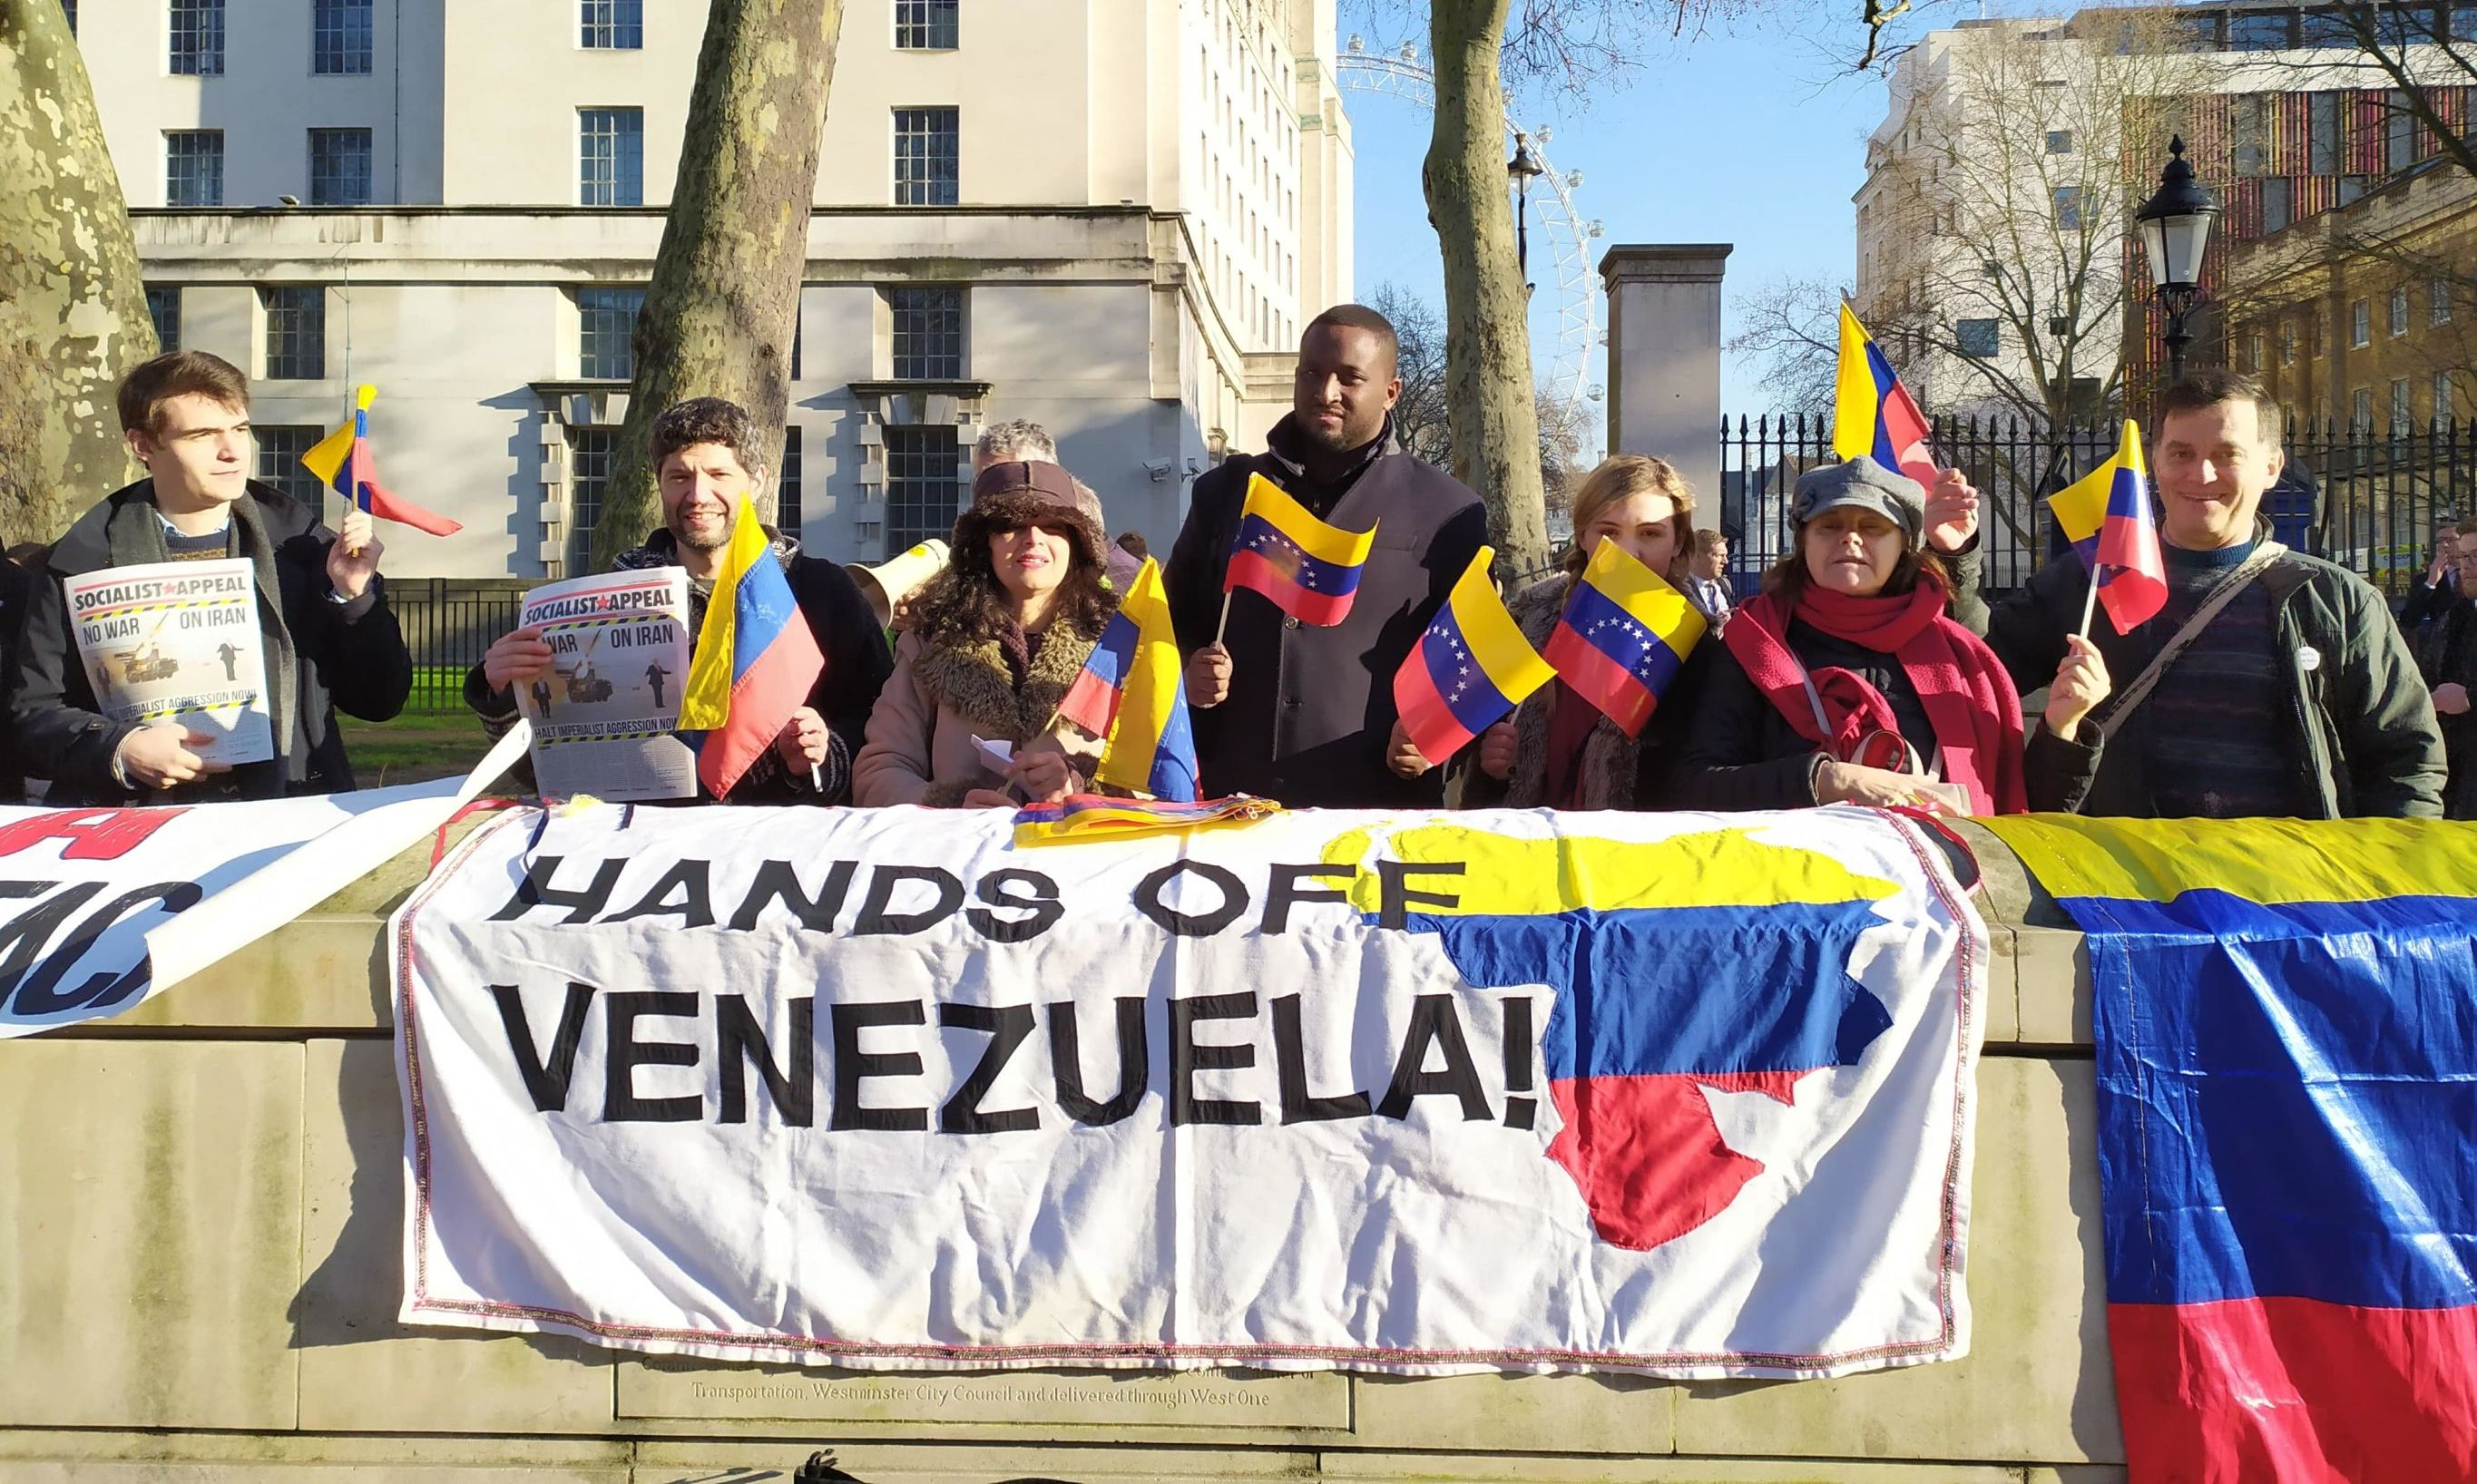 Guaido demo London Image Mohamed Elmaazi